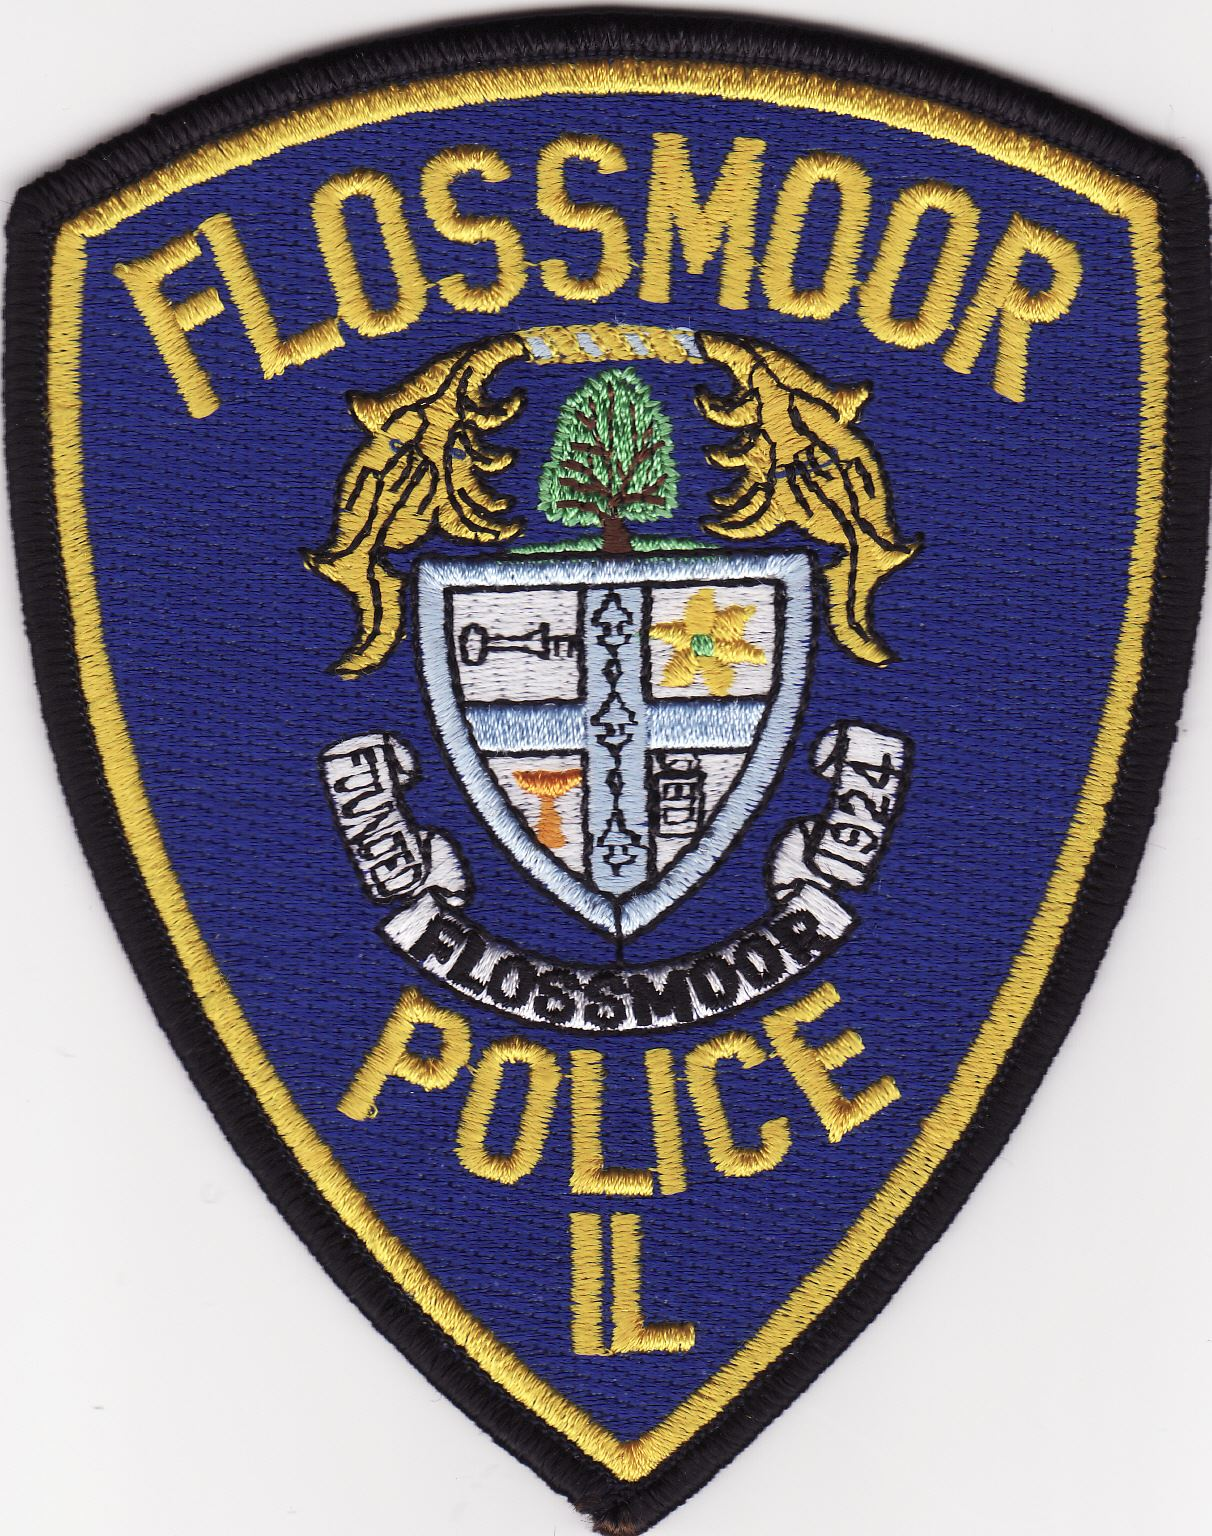 Flossmoor Police Department Patch